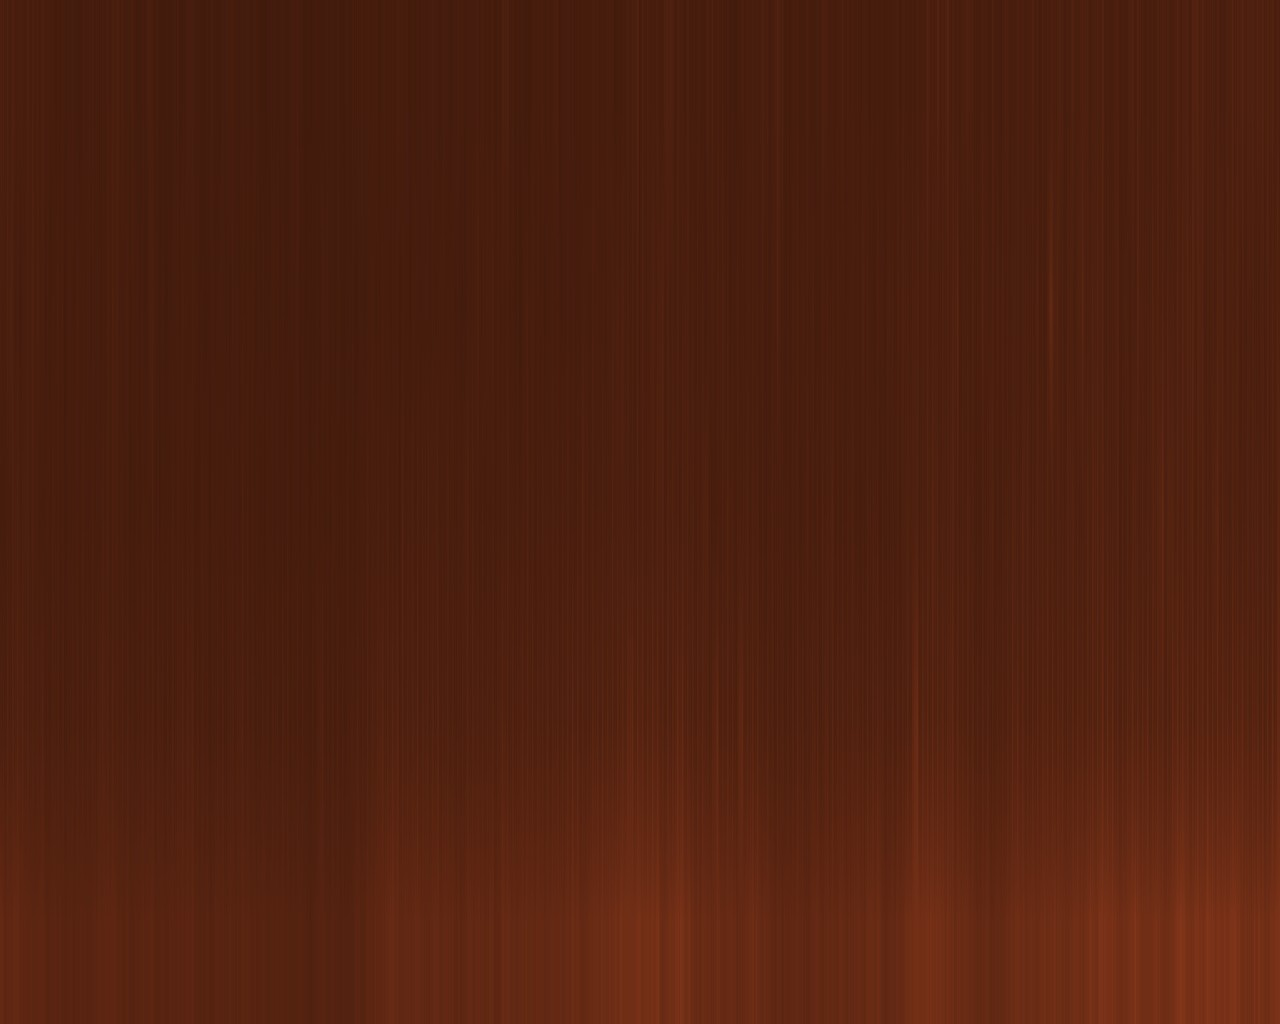 brushed wallpaper red again by 10r